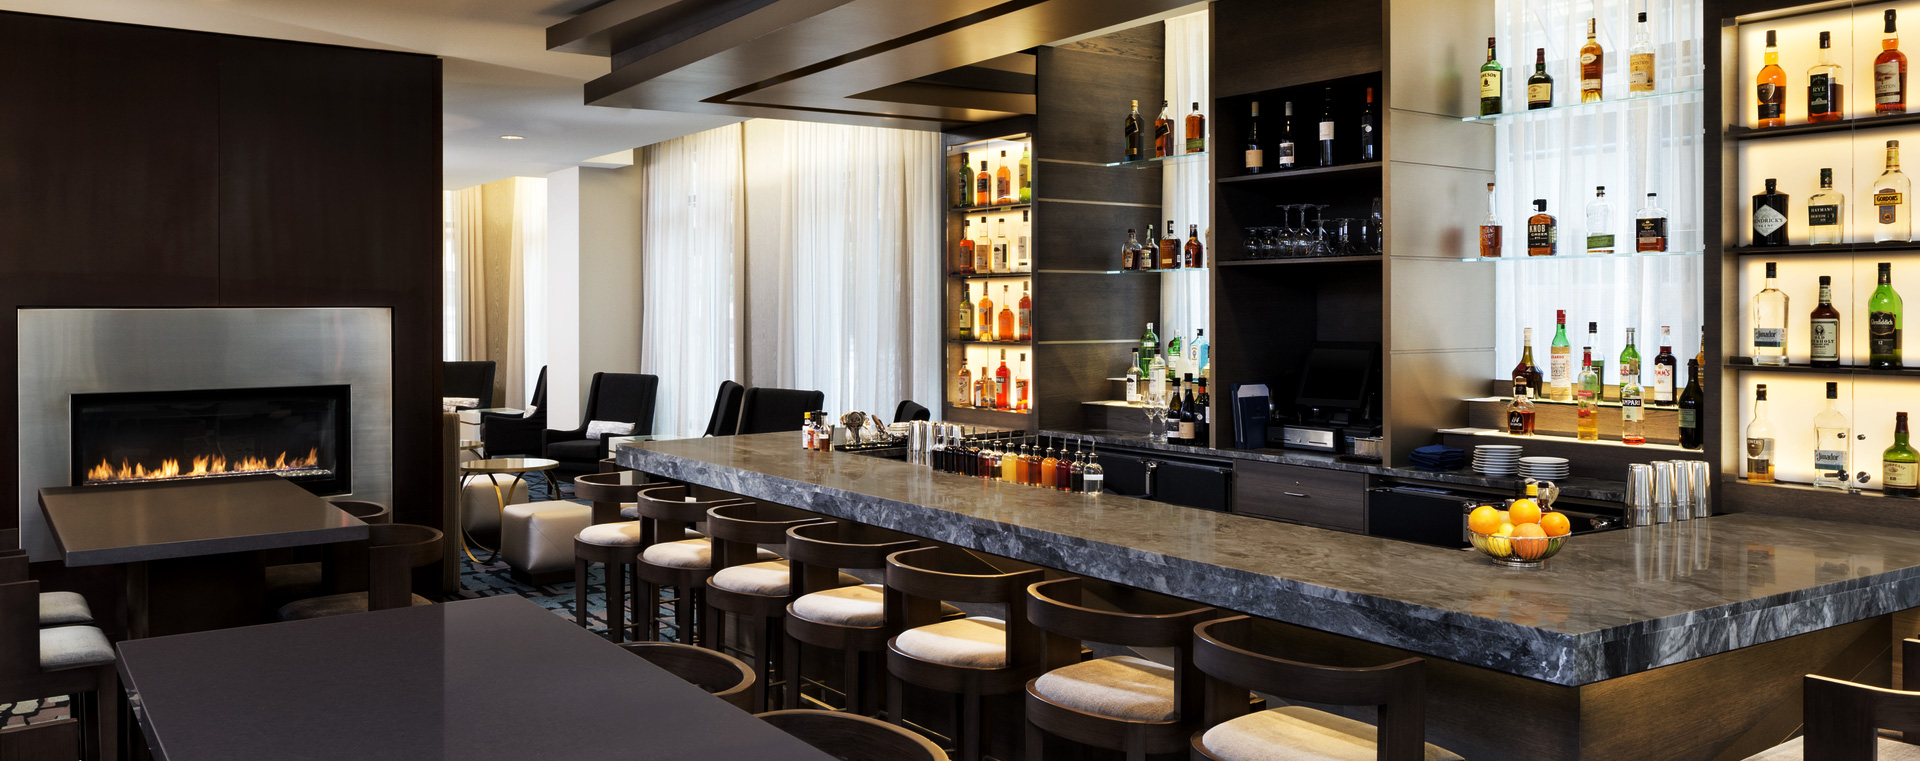 Hotel Ivy, A Luxury Collection Hotel, Minneapolis The BAR at Hotel Ivy